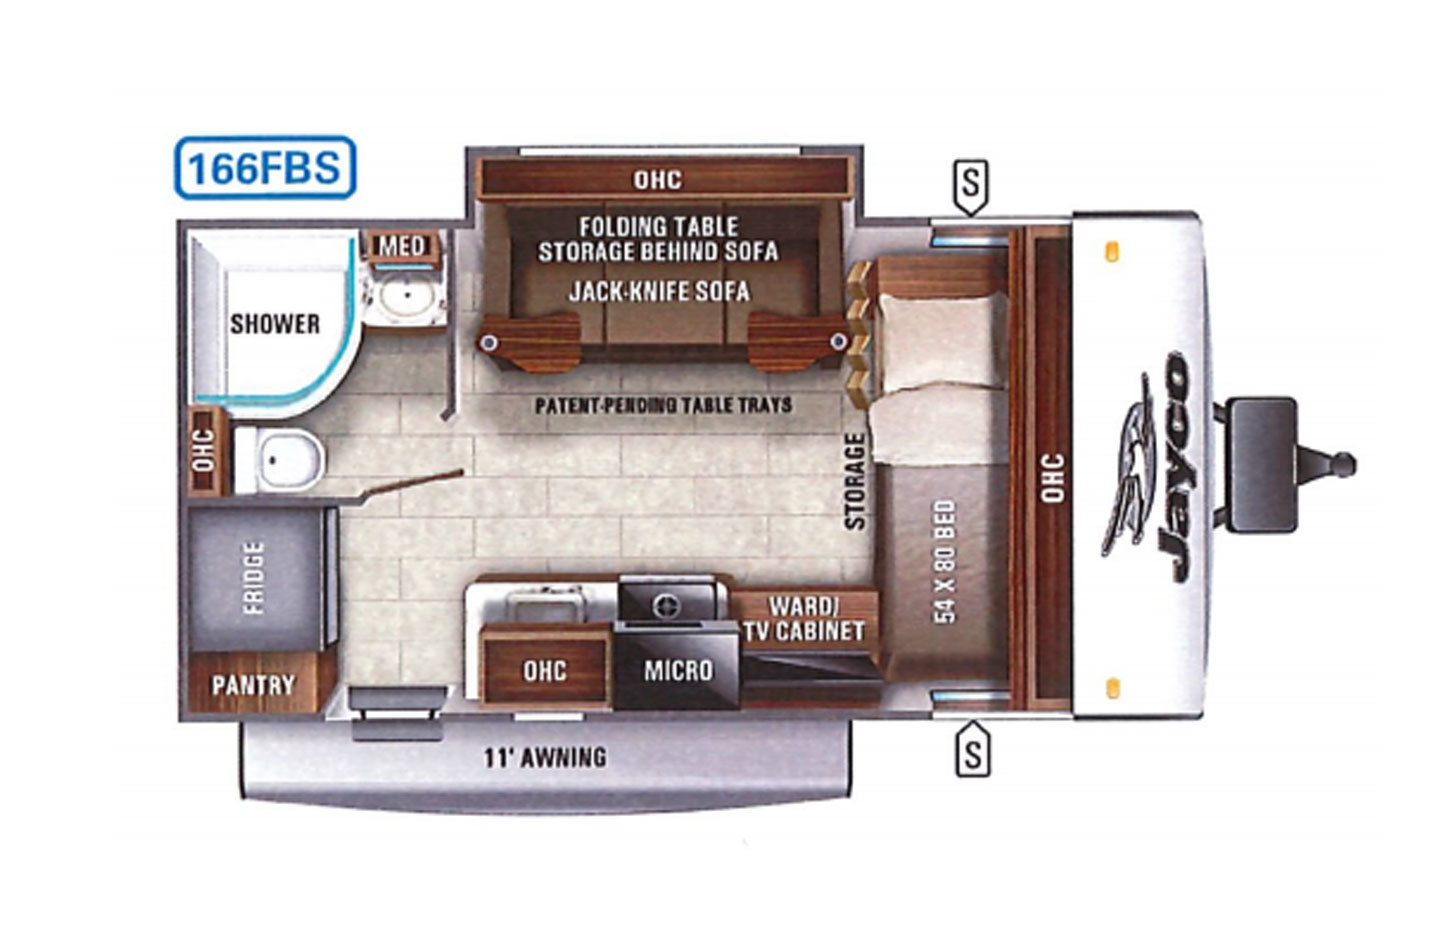 2021 Jayco Jay Feather Micro 166FBS Floorplan